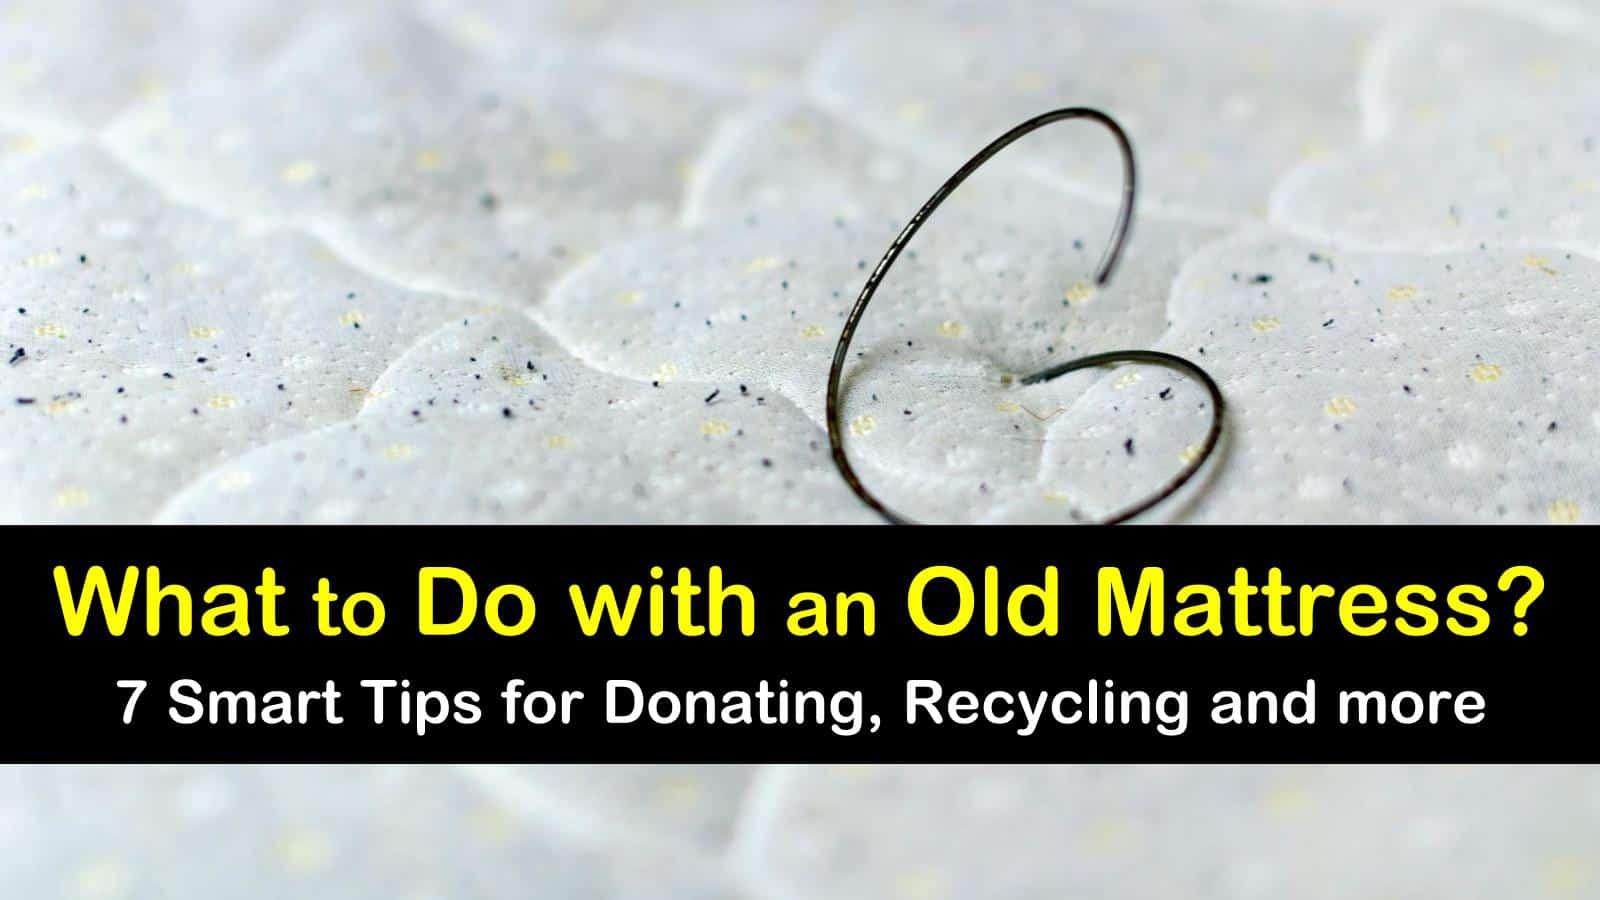 what to do with an old mattress titleimg1